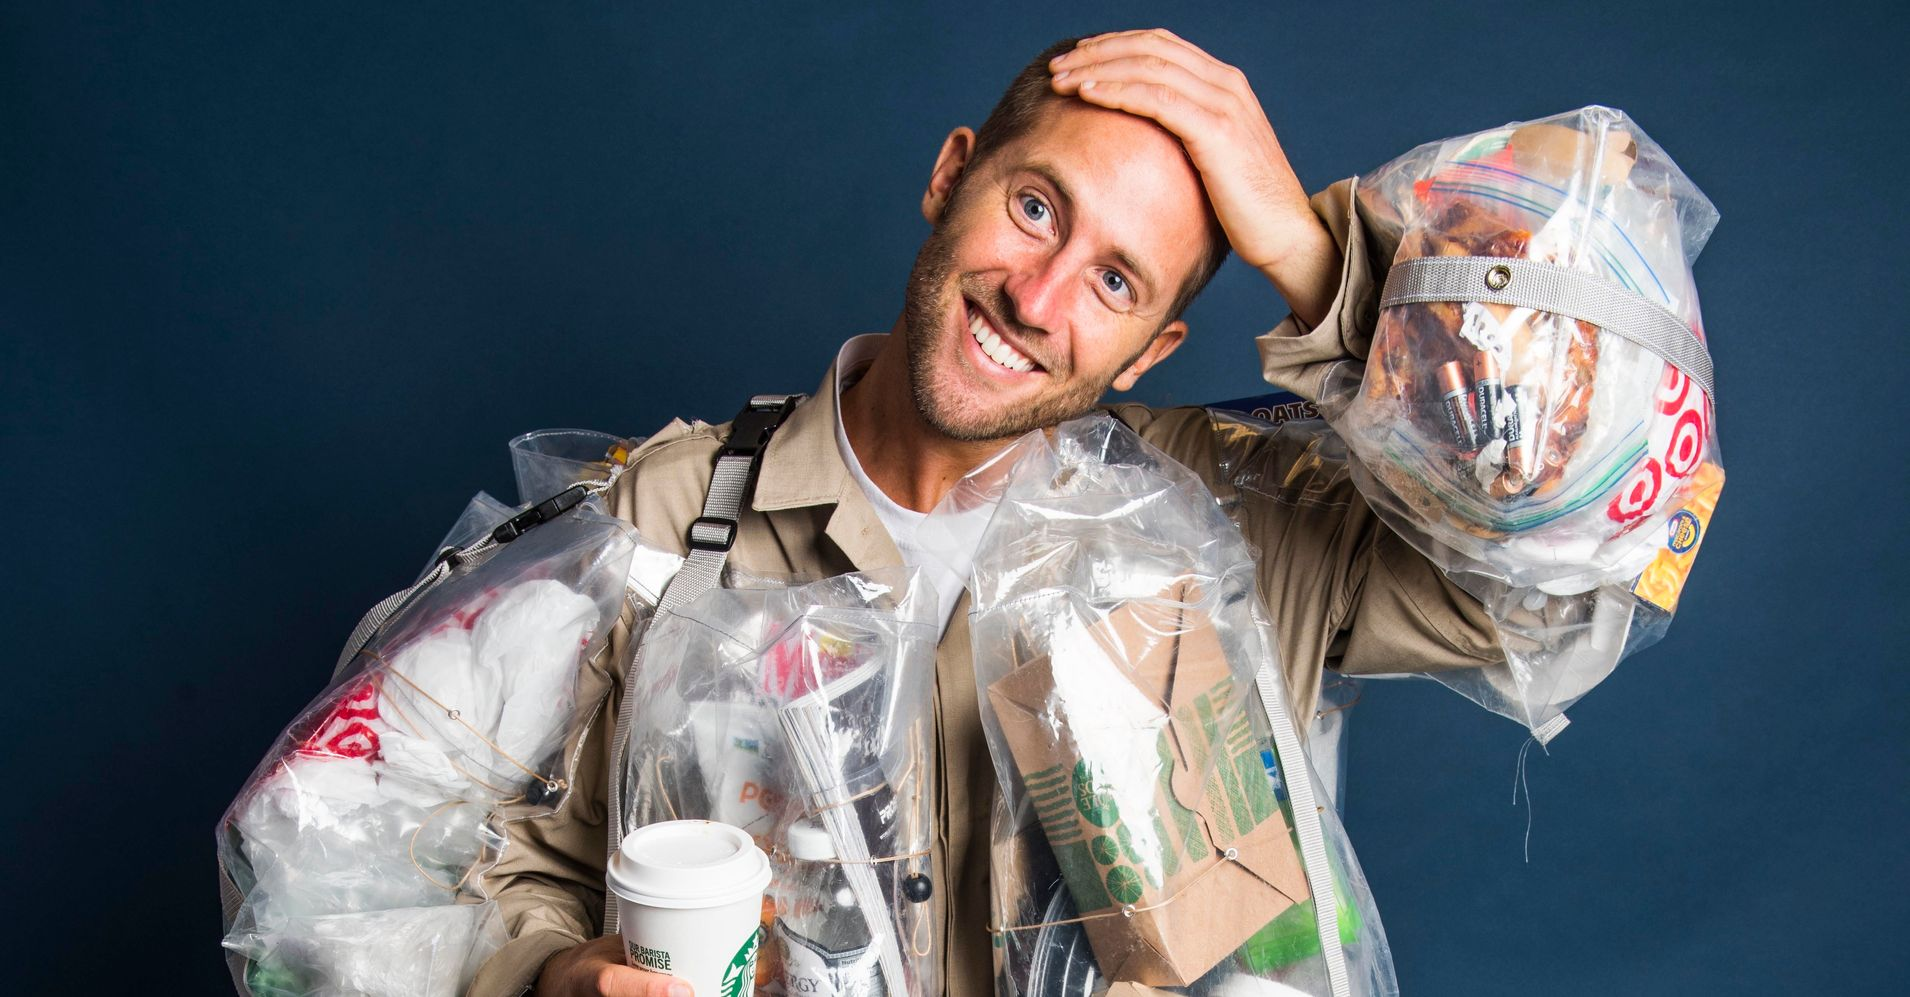 This Guy Is Wearing Every Piece Of Garbage He Generates